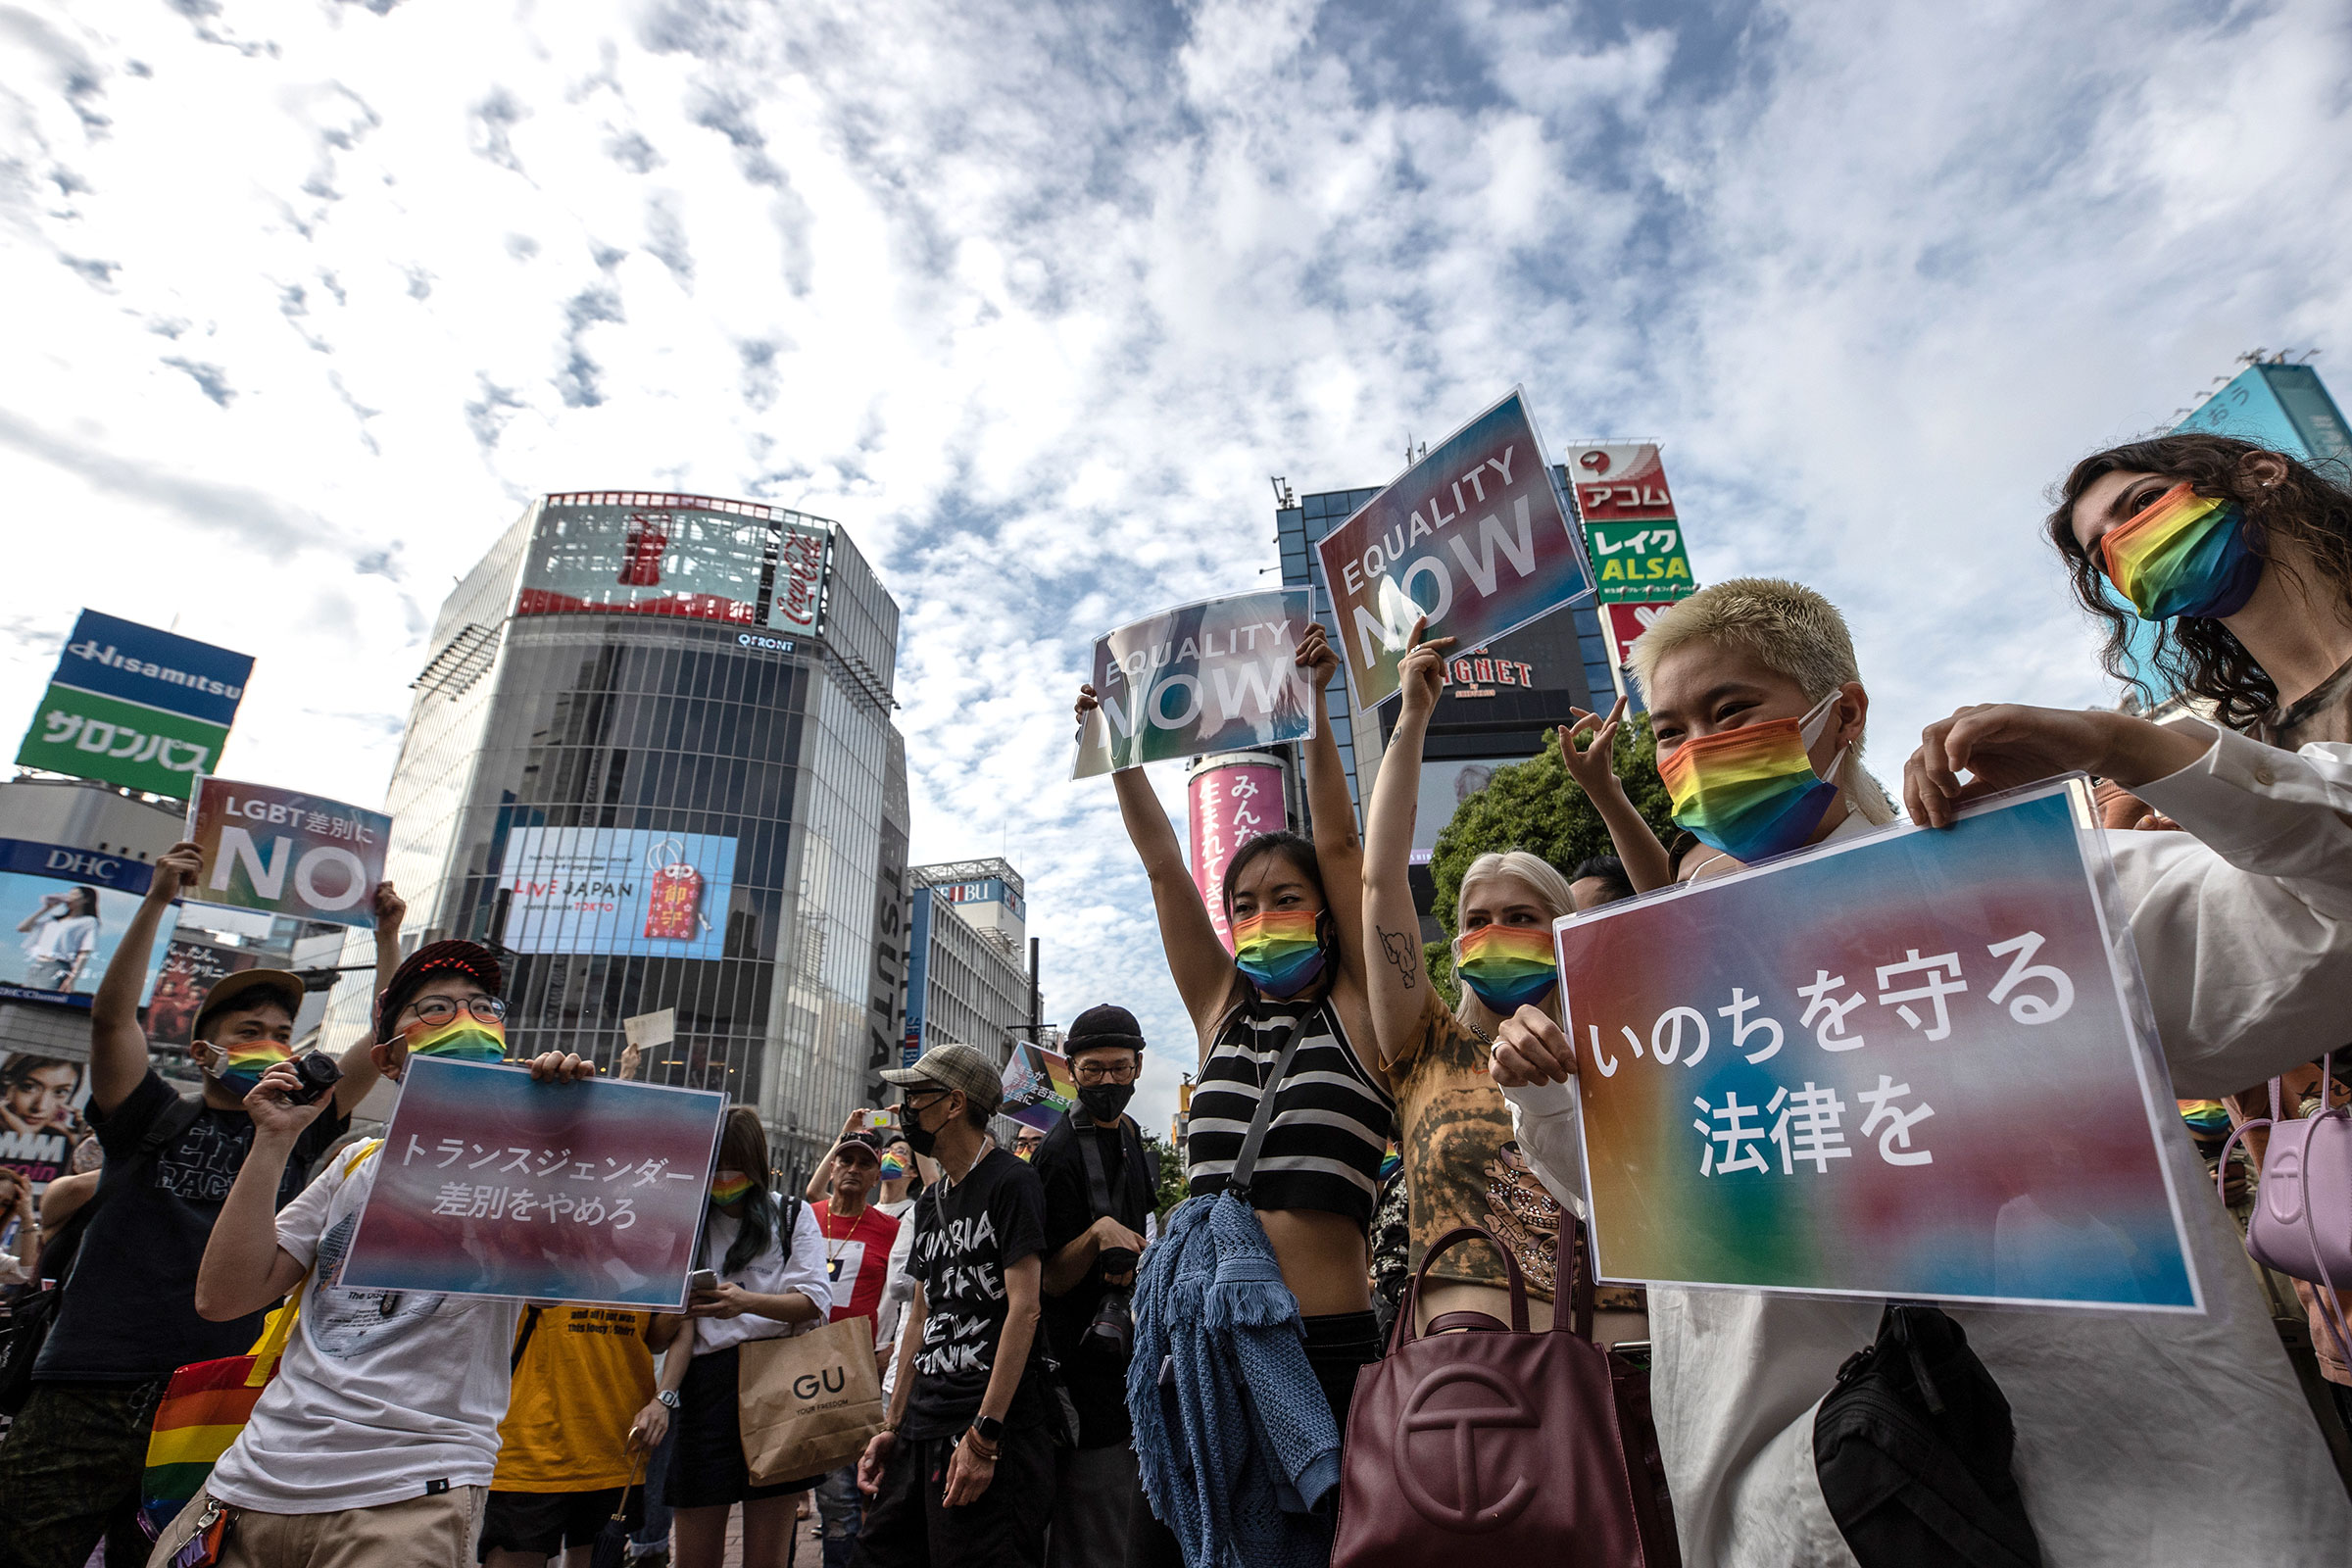 People gather during a rally calling for anti-discrimination legislation on June 6, 2021 in Tokyo.